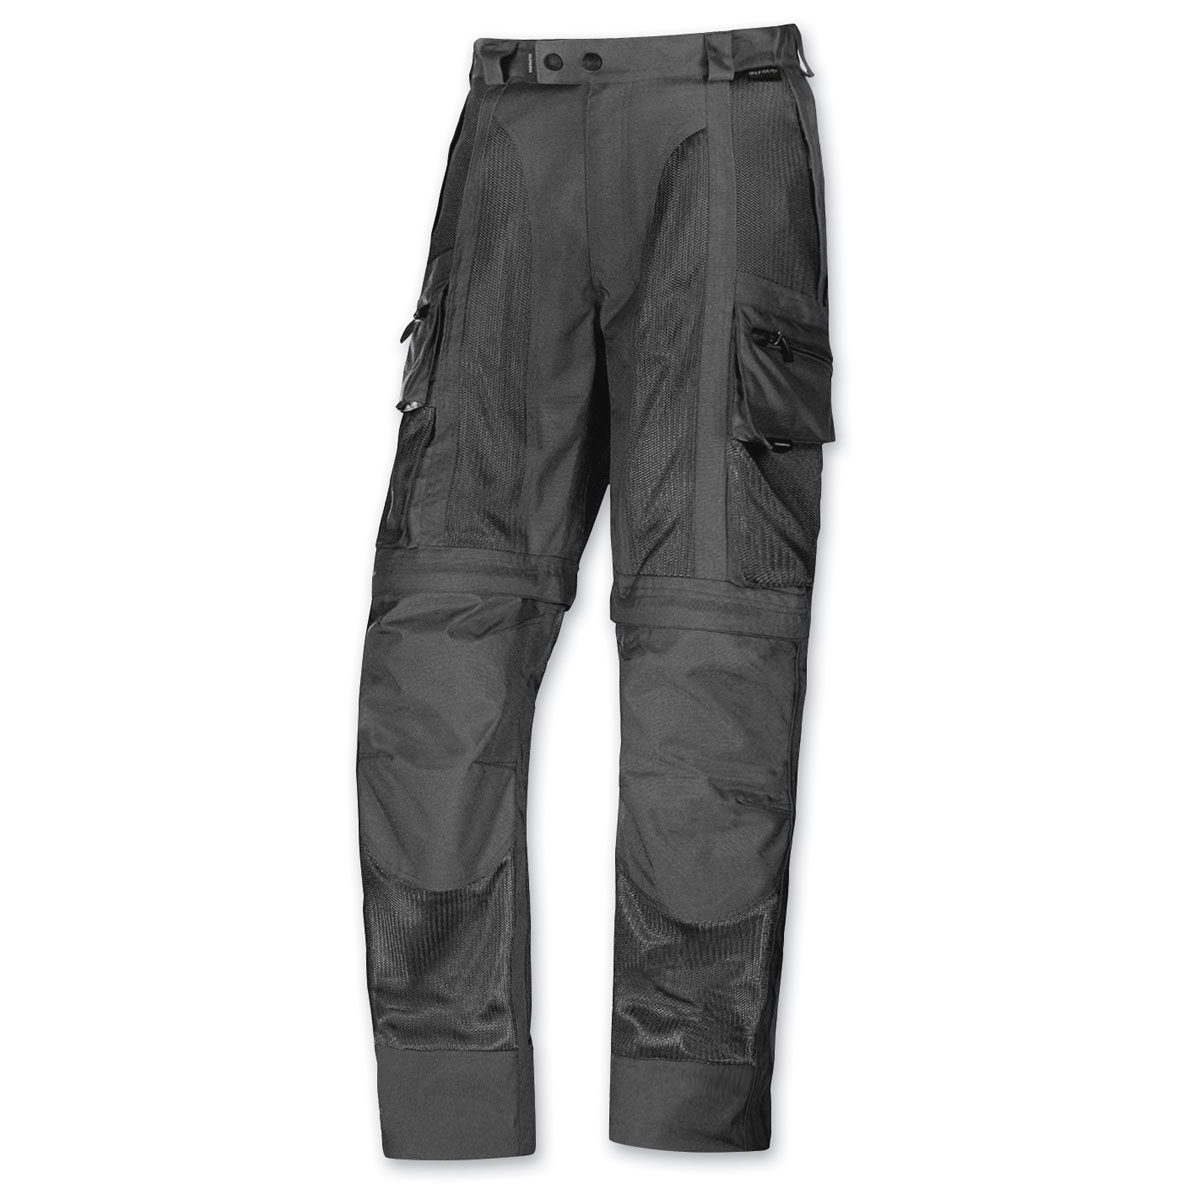 Olympia Moto Sports Men's Dakar Mesh Tech Pewter Pants